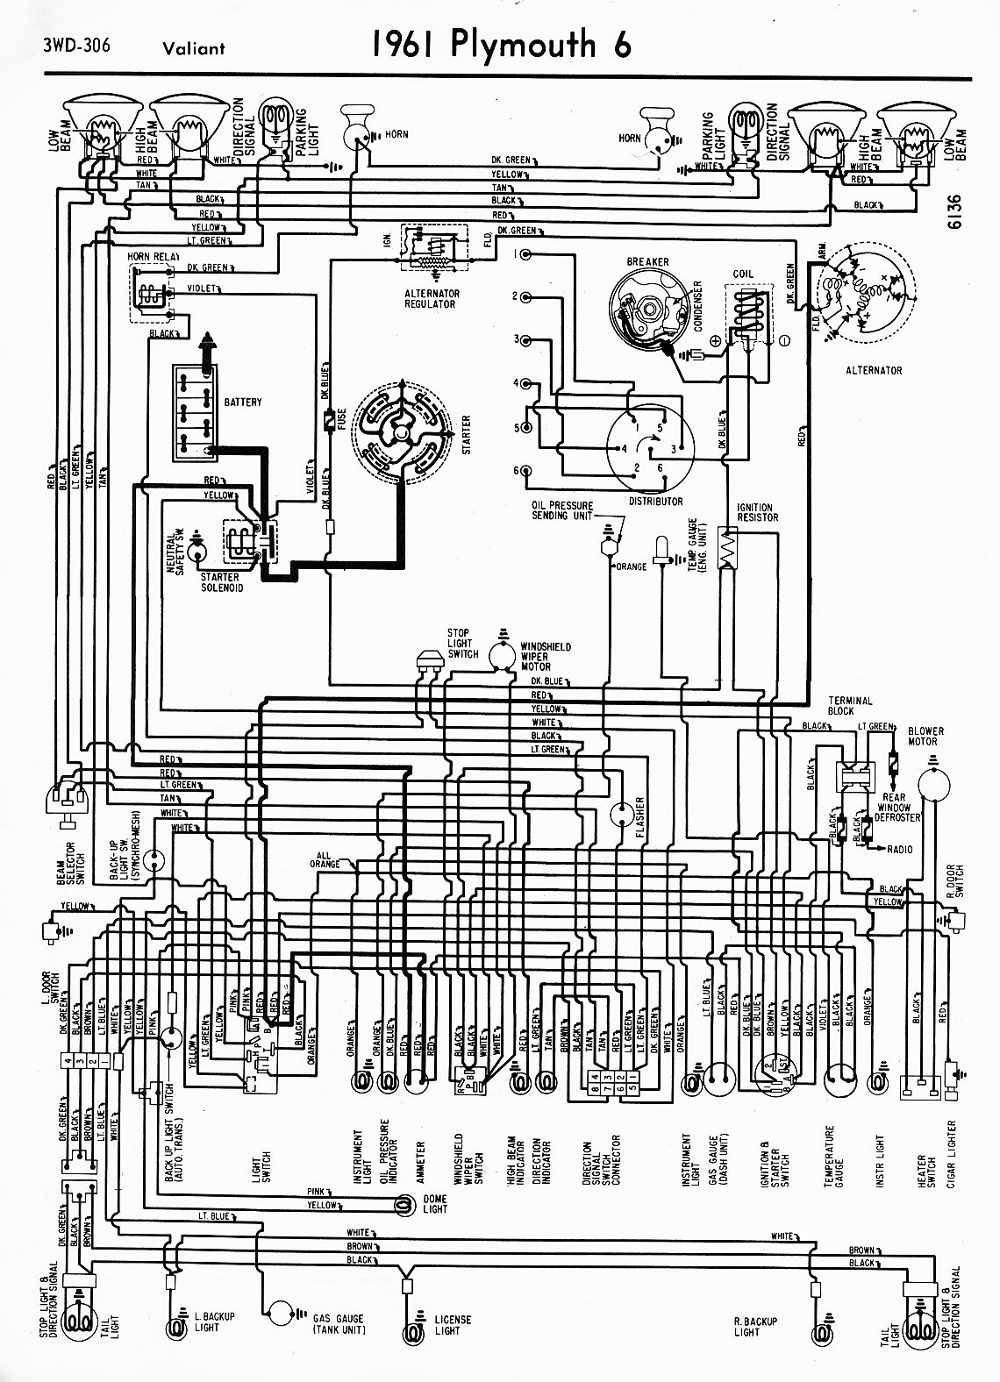 Plymouth Car Manuals Wiring Diagrams Pdf Fault Codes Jaguar Diagram 64 Download